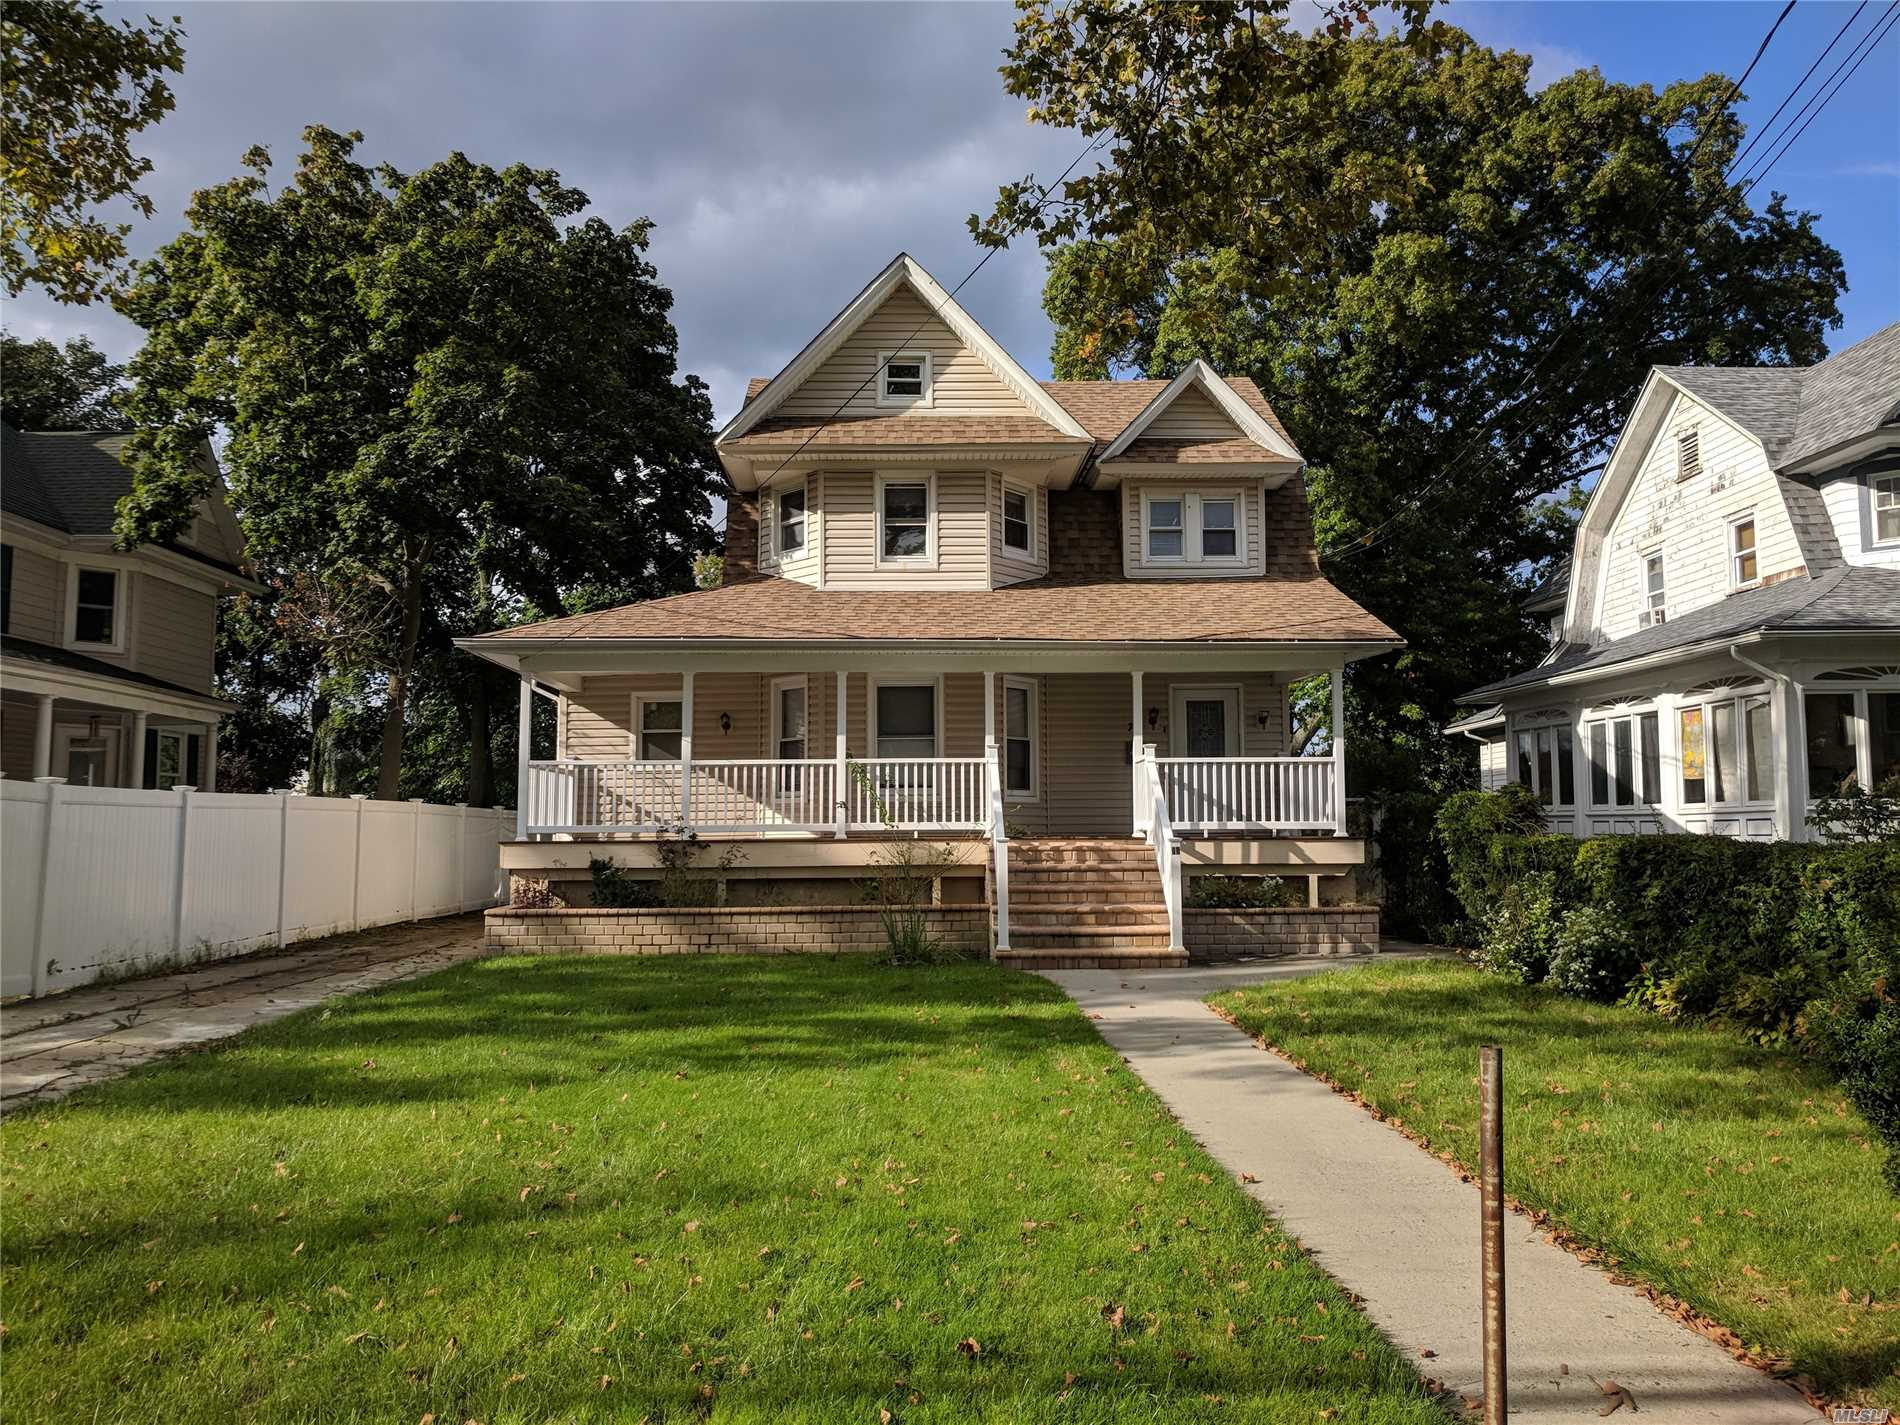 Photo of home for sale at 74 Southside Ave, Freeport NY